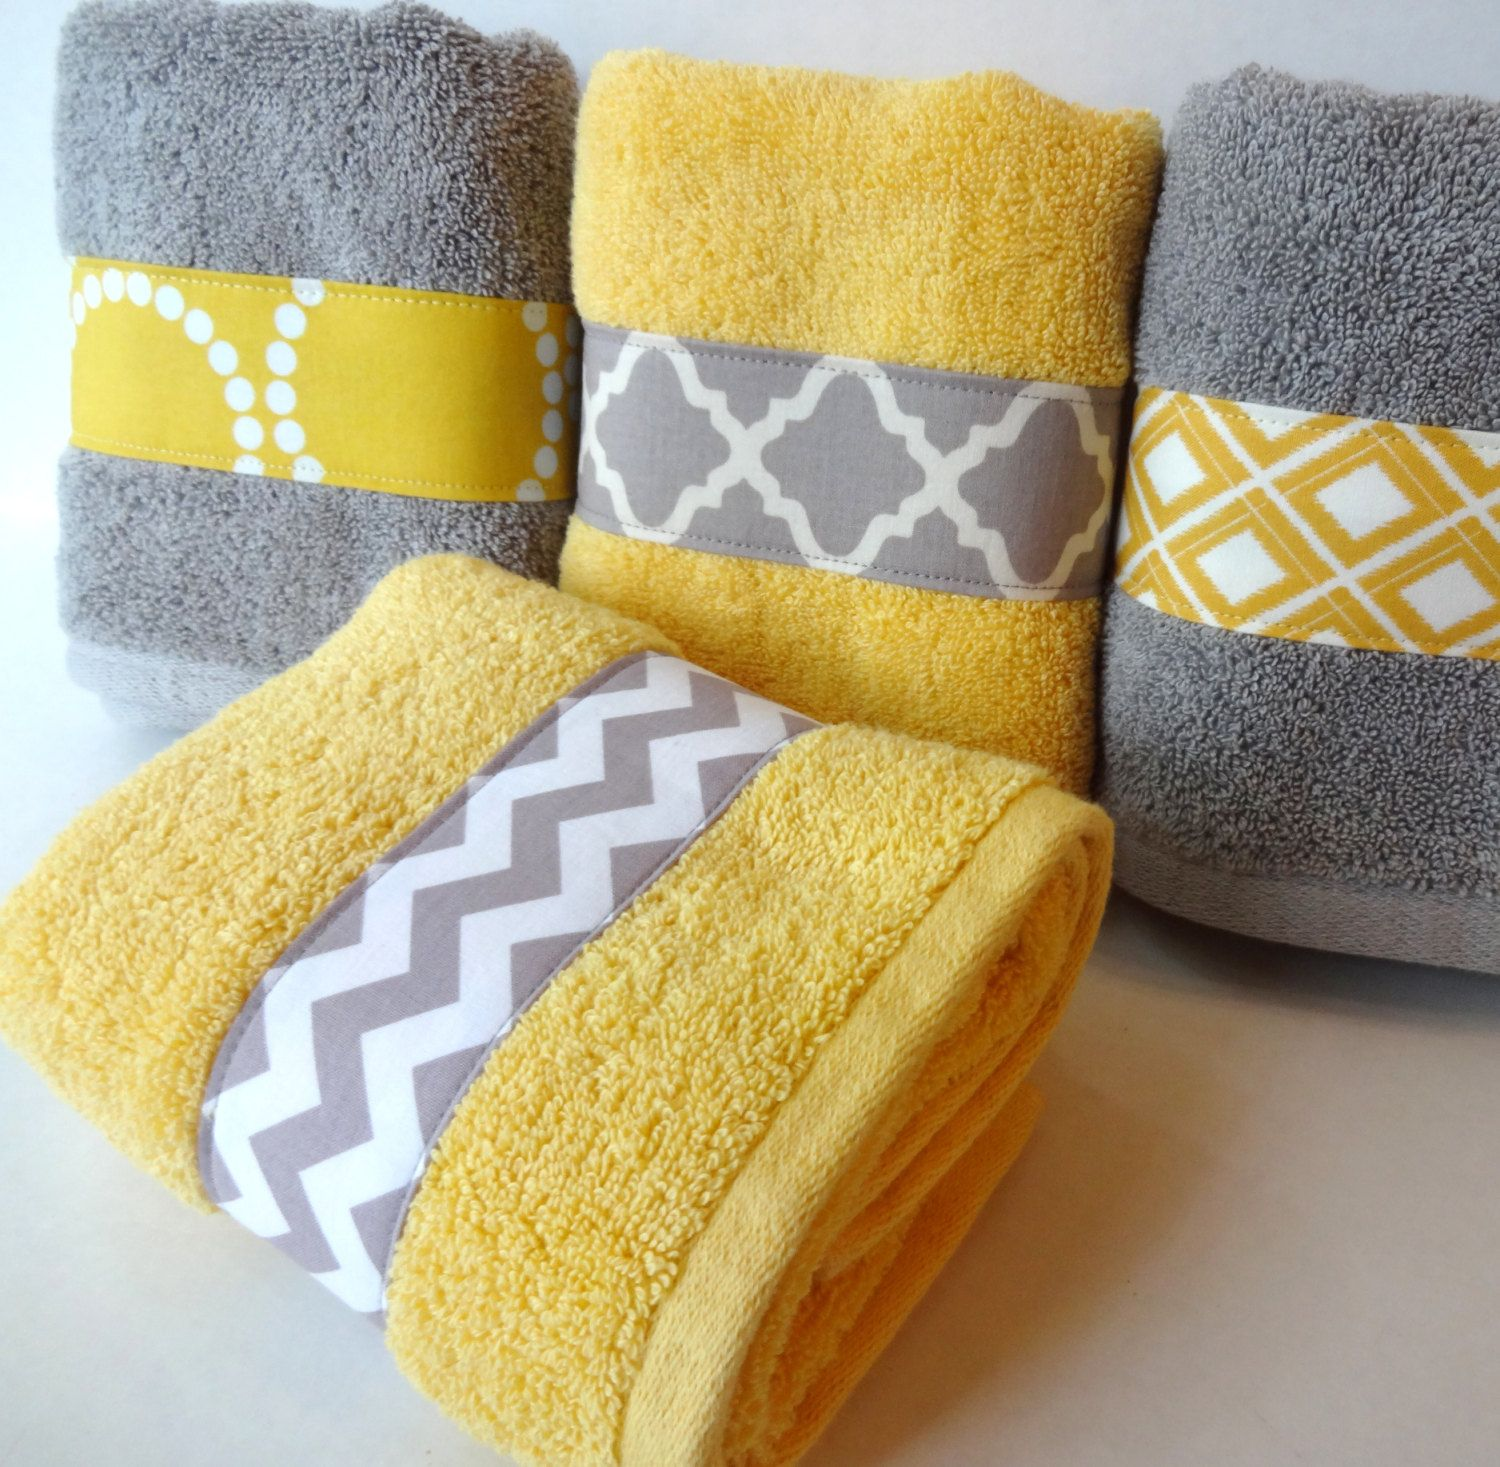 Gray and yellow bathroom - Yellow And Grey Bath Towels Yellow And Grey Yellow And Gray Yellow Bathroom Grey Bathroom Decorated Towels Hand Towel August Ave